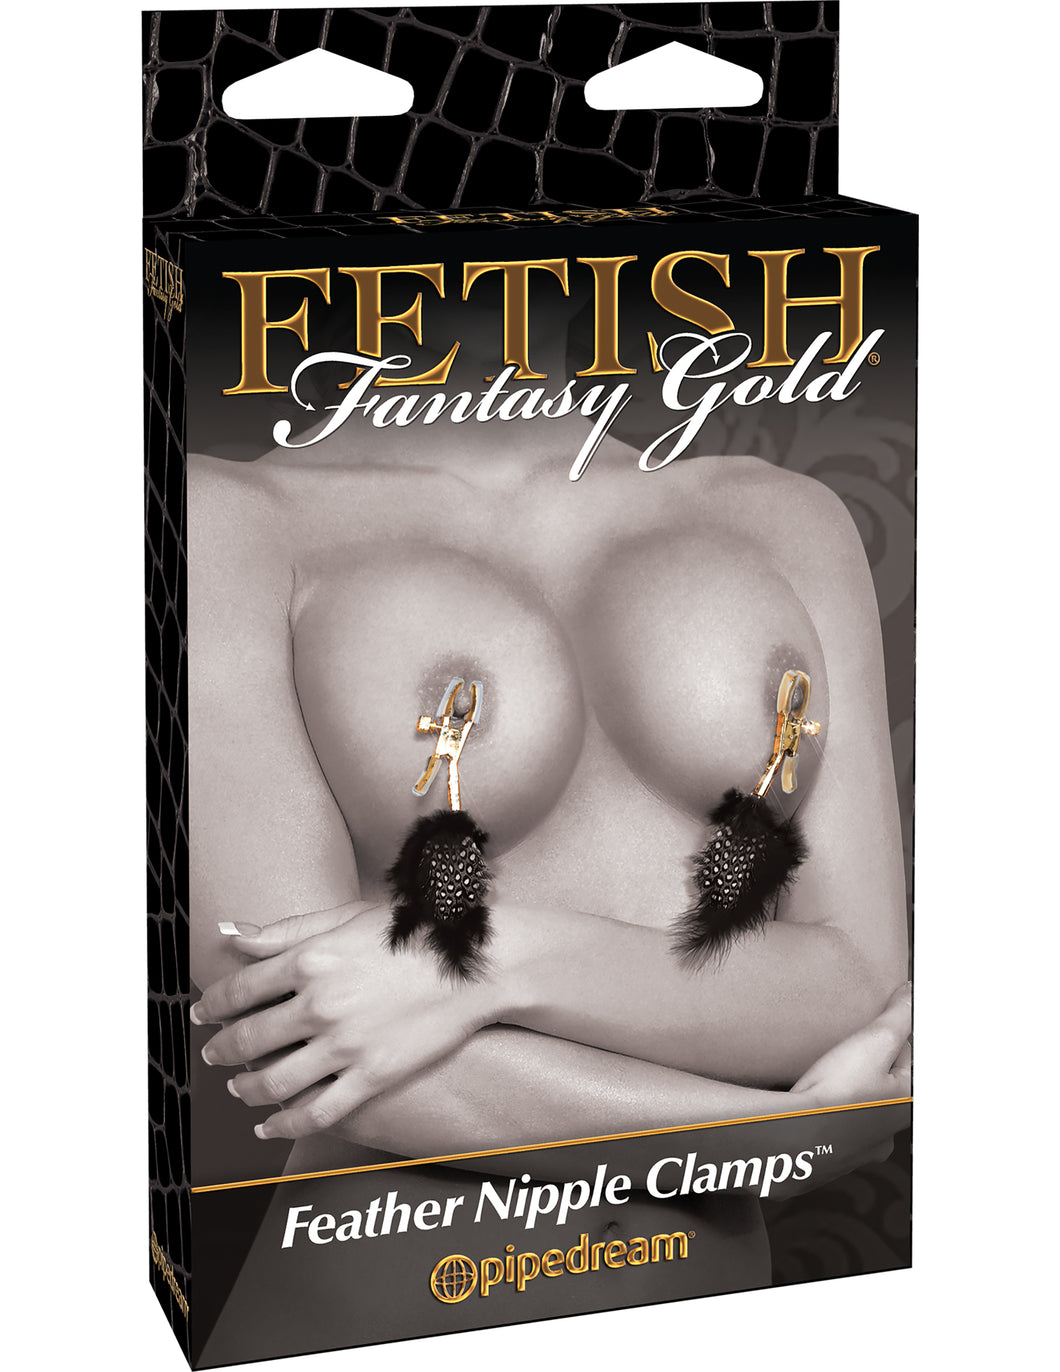 Definitely playful and sexy, the Fetish Fantasy Feather Clamps are made with durable metal clips and covered in soft rubber liners, these clamps are perfect for beginners and fetish enthusiasts alike. The amount of pressure you apply to the nipple is adjustable by turning the screw, while the soft feather streamers tease, tickle and titillate!